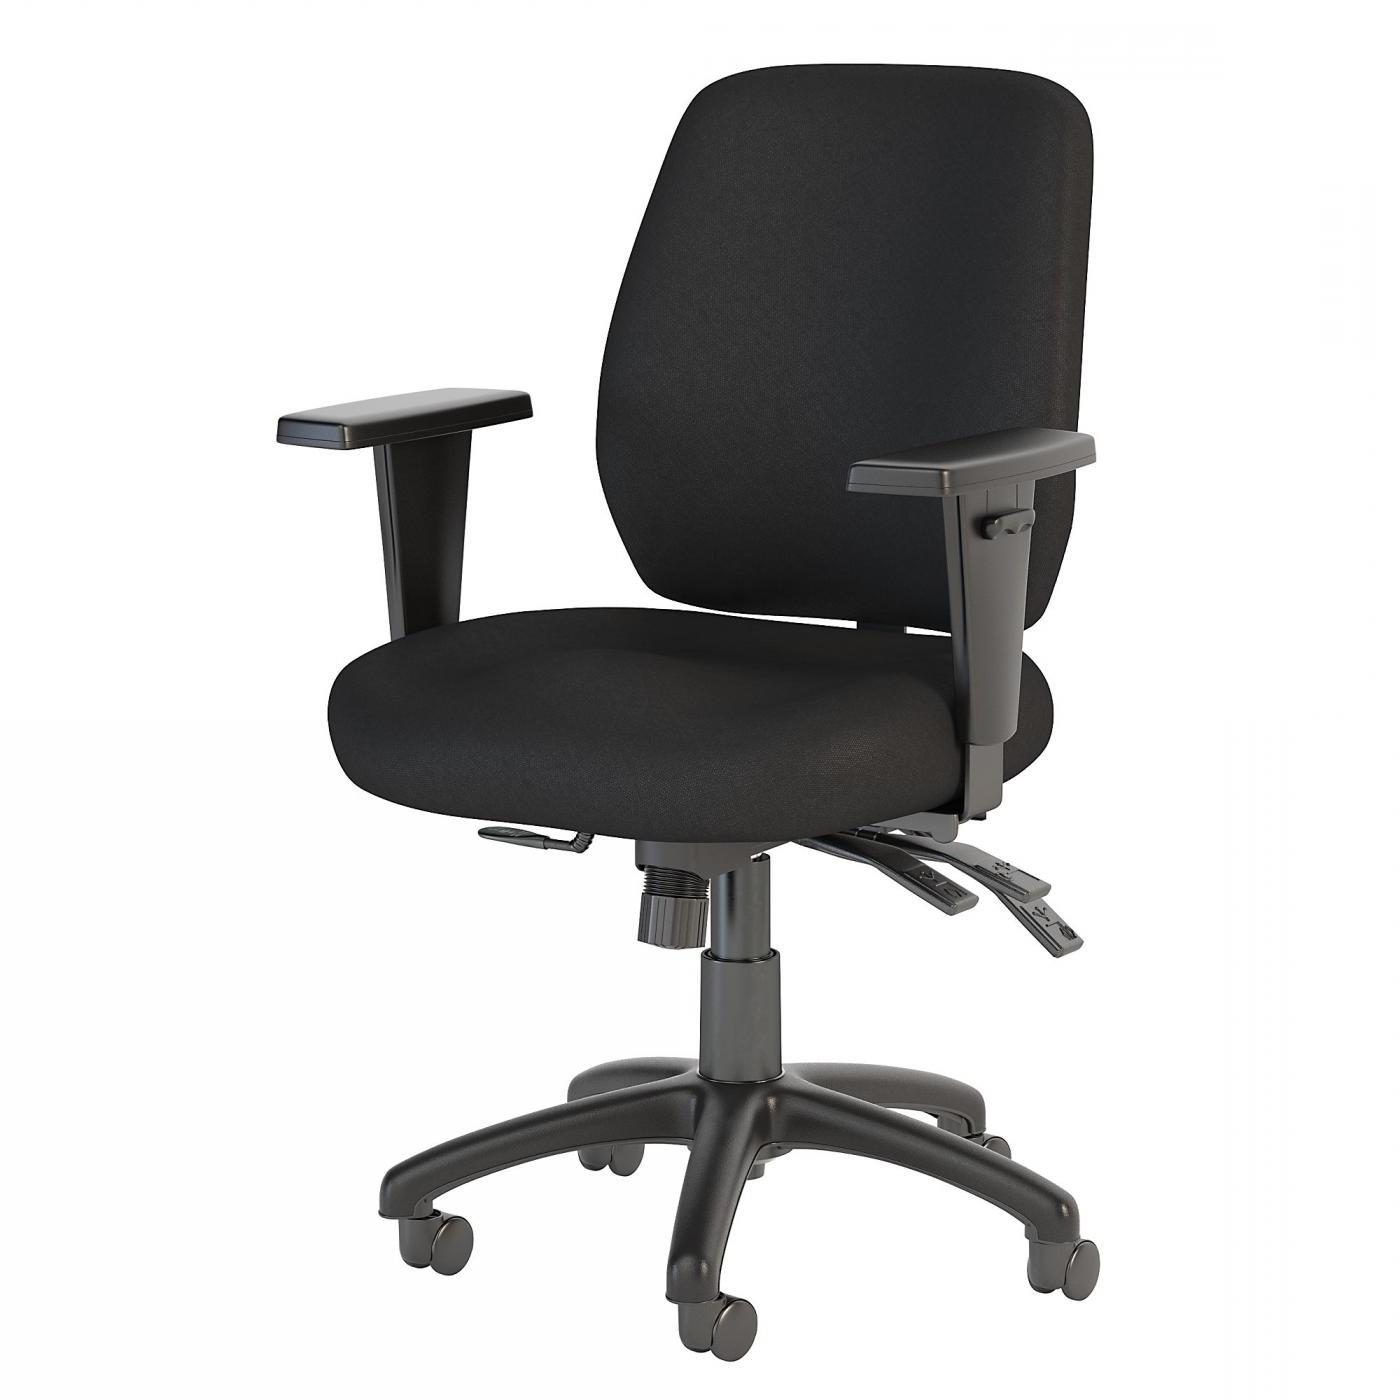 <font color=#c60><b>BUSH BUSINESS FURNITURE PROSPER MID BACK MULTIFUNCTION OFFICE CHAIR. FREE SHIPPING</font></b> </font></b></font></b>